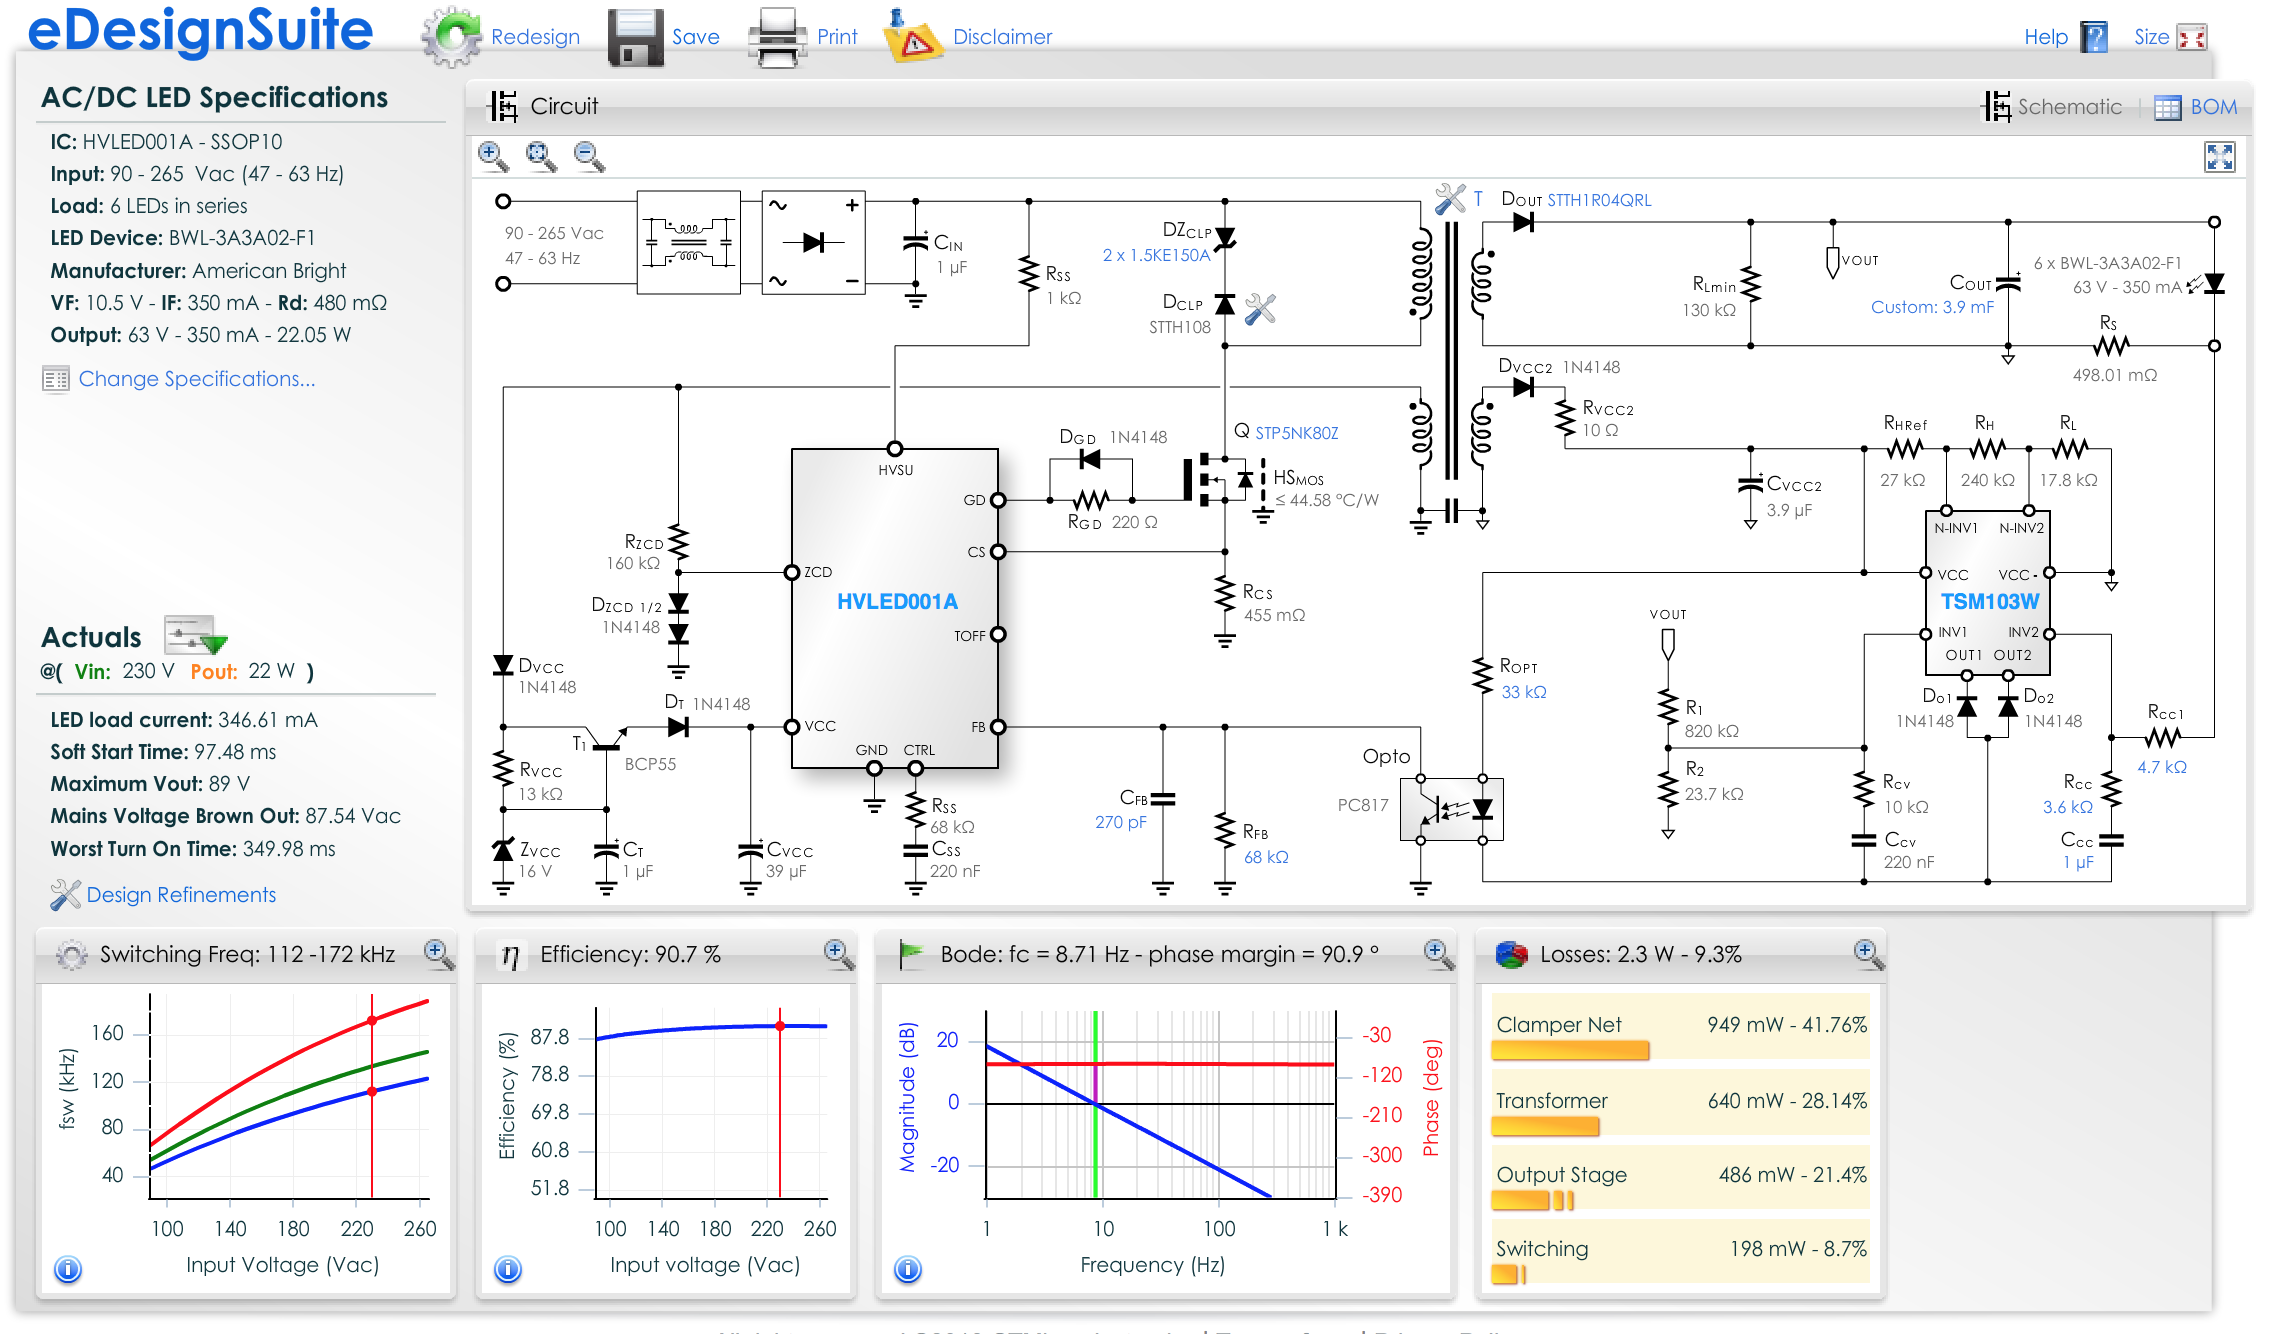 Edesignsuite Stmicroelectronics Intelligent Network Builders Views Electrical Oneline Diagram Smart Simulator And System Design View